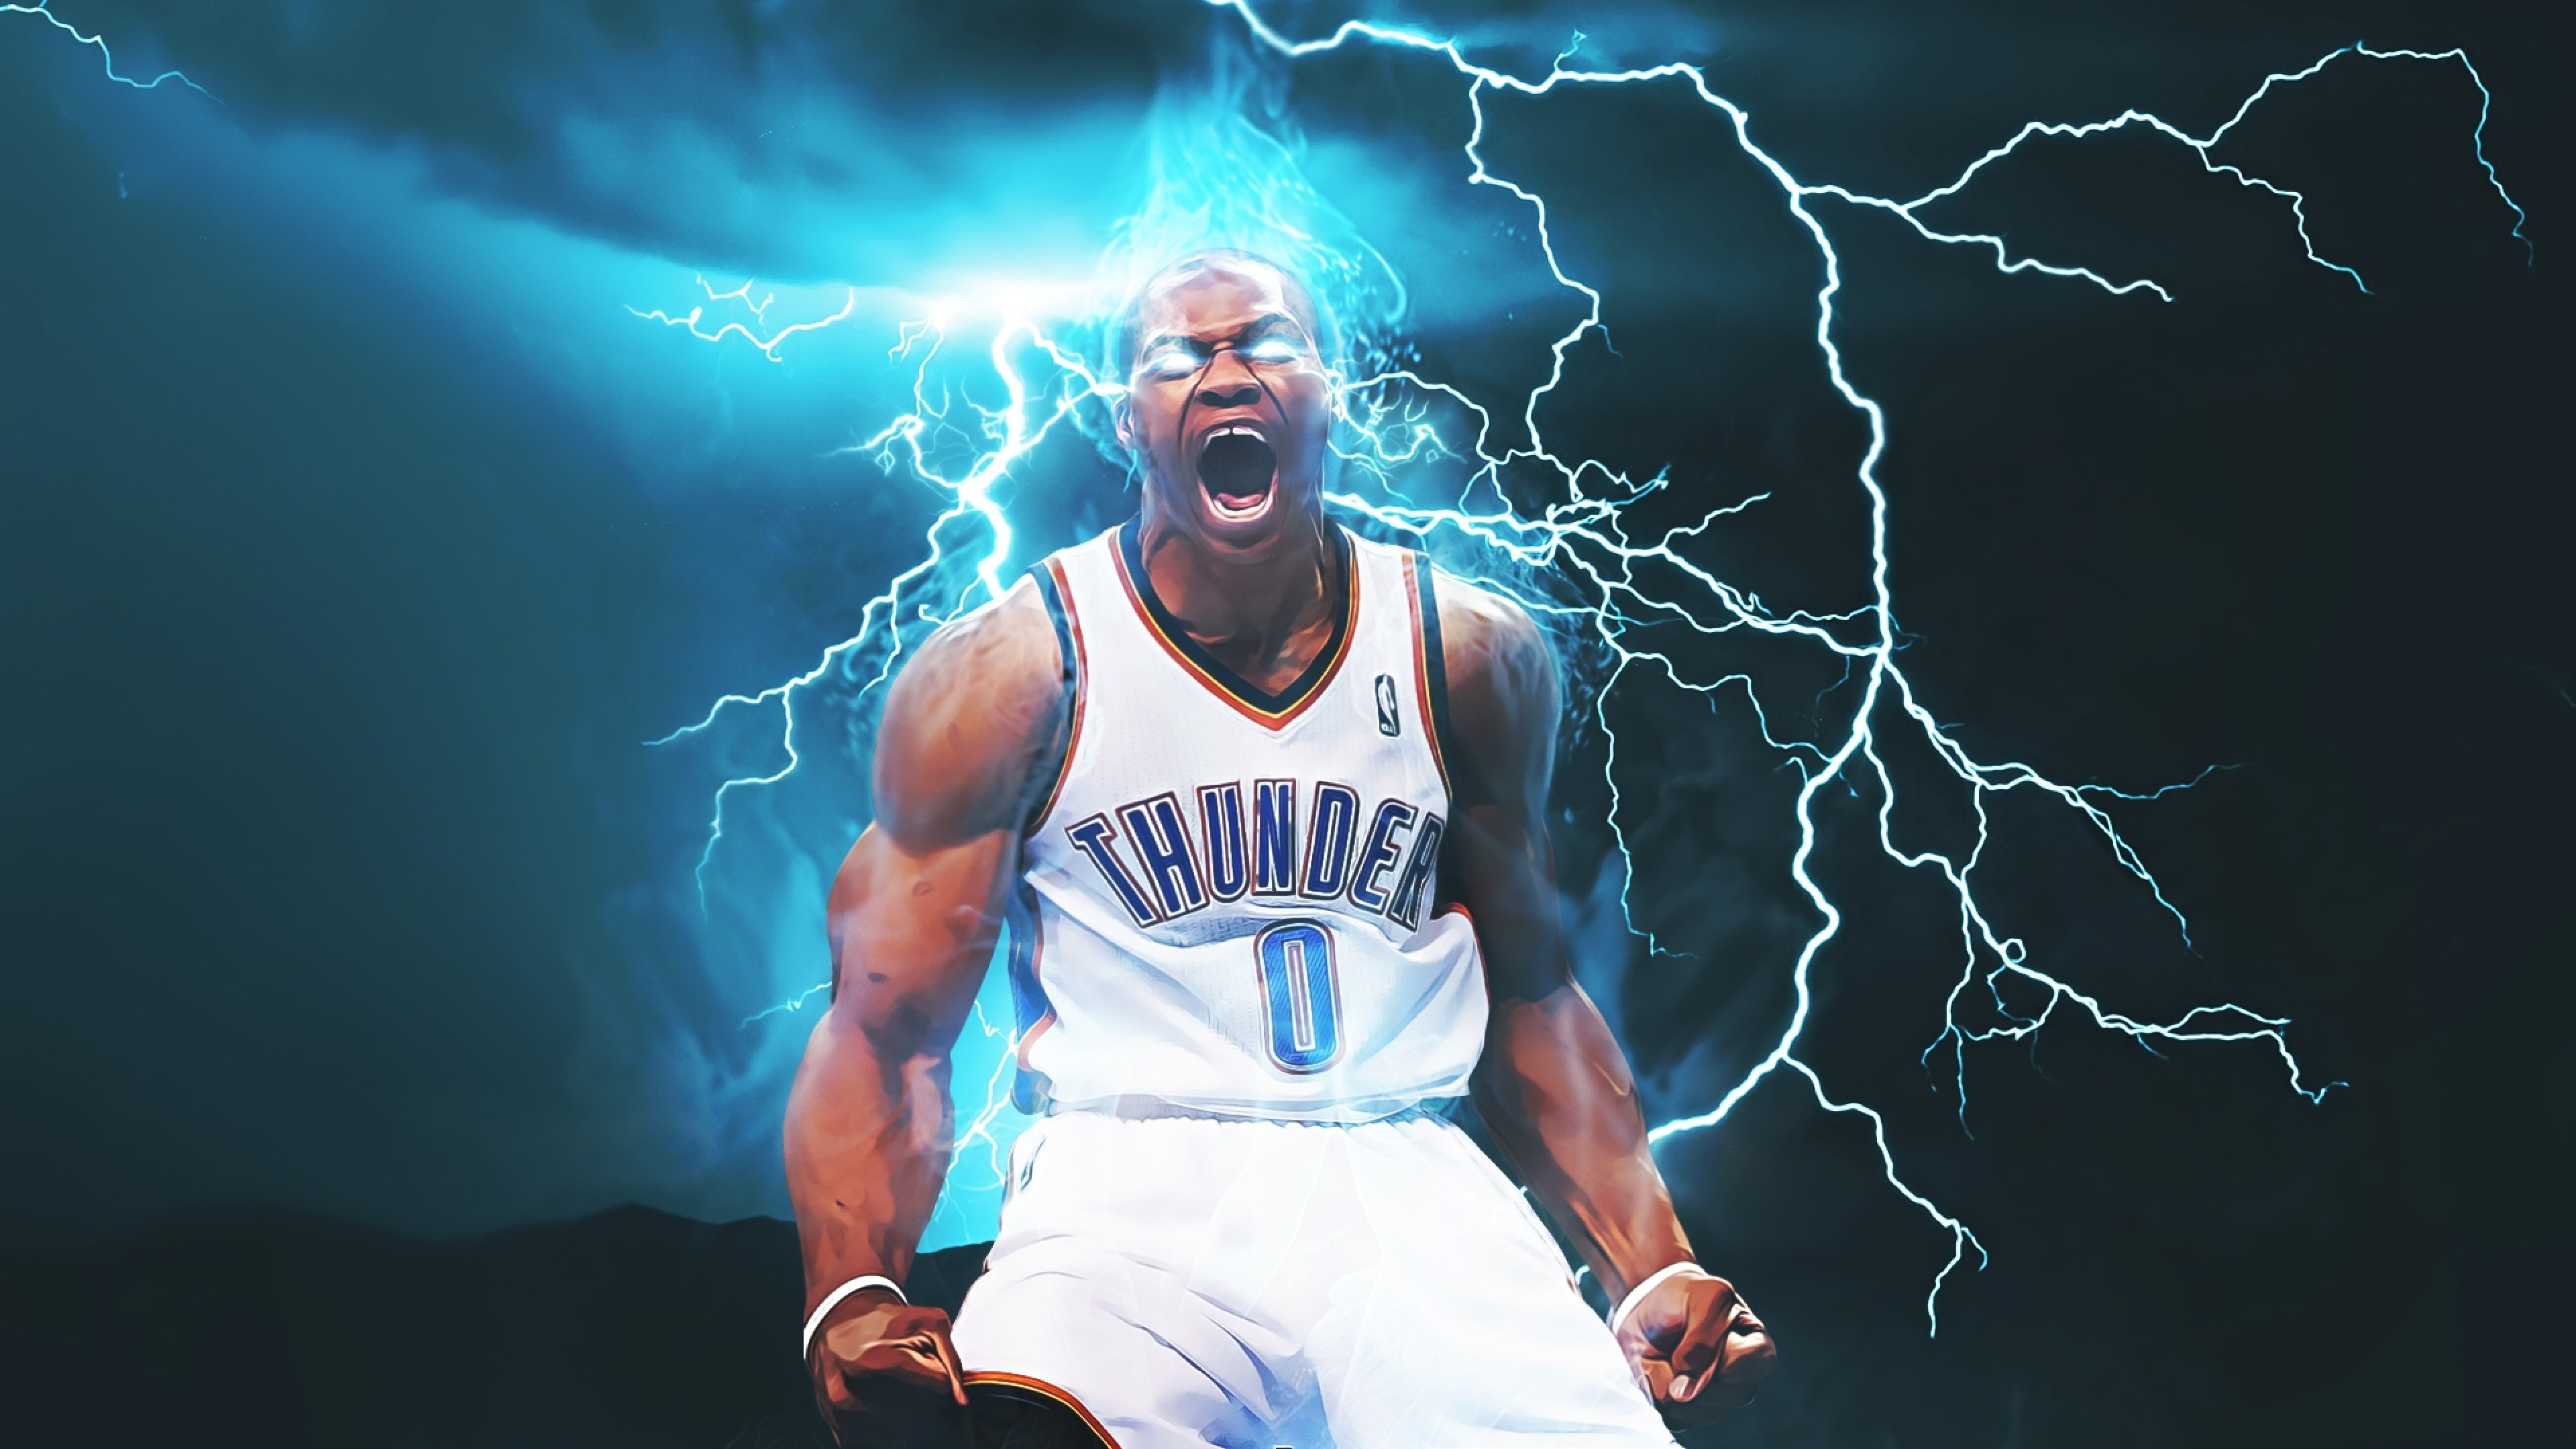 3840x2160 ... download  oklahoma city thunder rus westbrook; rus westbrook  wallpaper 2016 ...